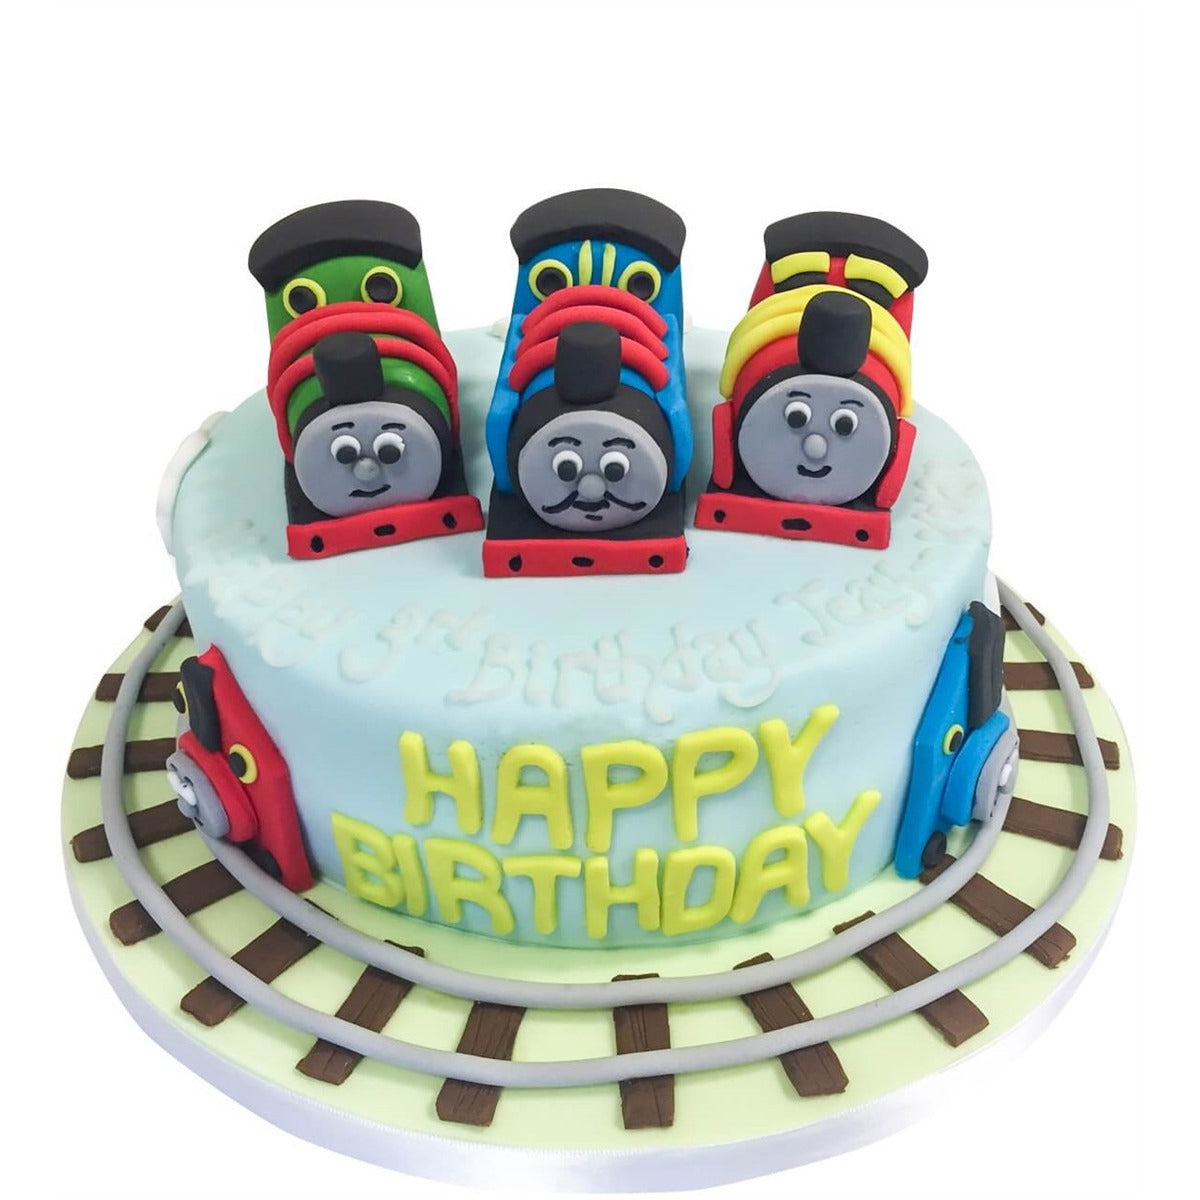 Surprising Thomas The Tank Engine Cake Buy Online Free Uk Delivery New Cakes Personalised Birthday Cards Sponlily Jamesorg